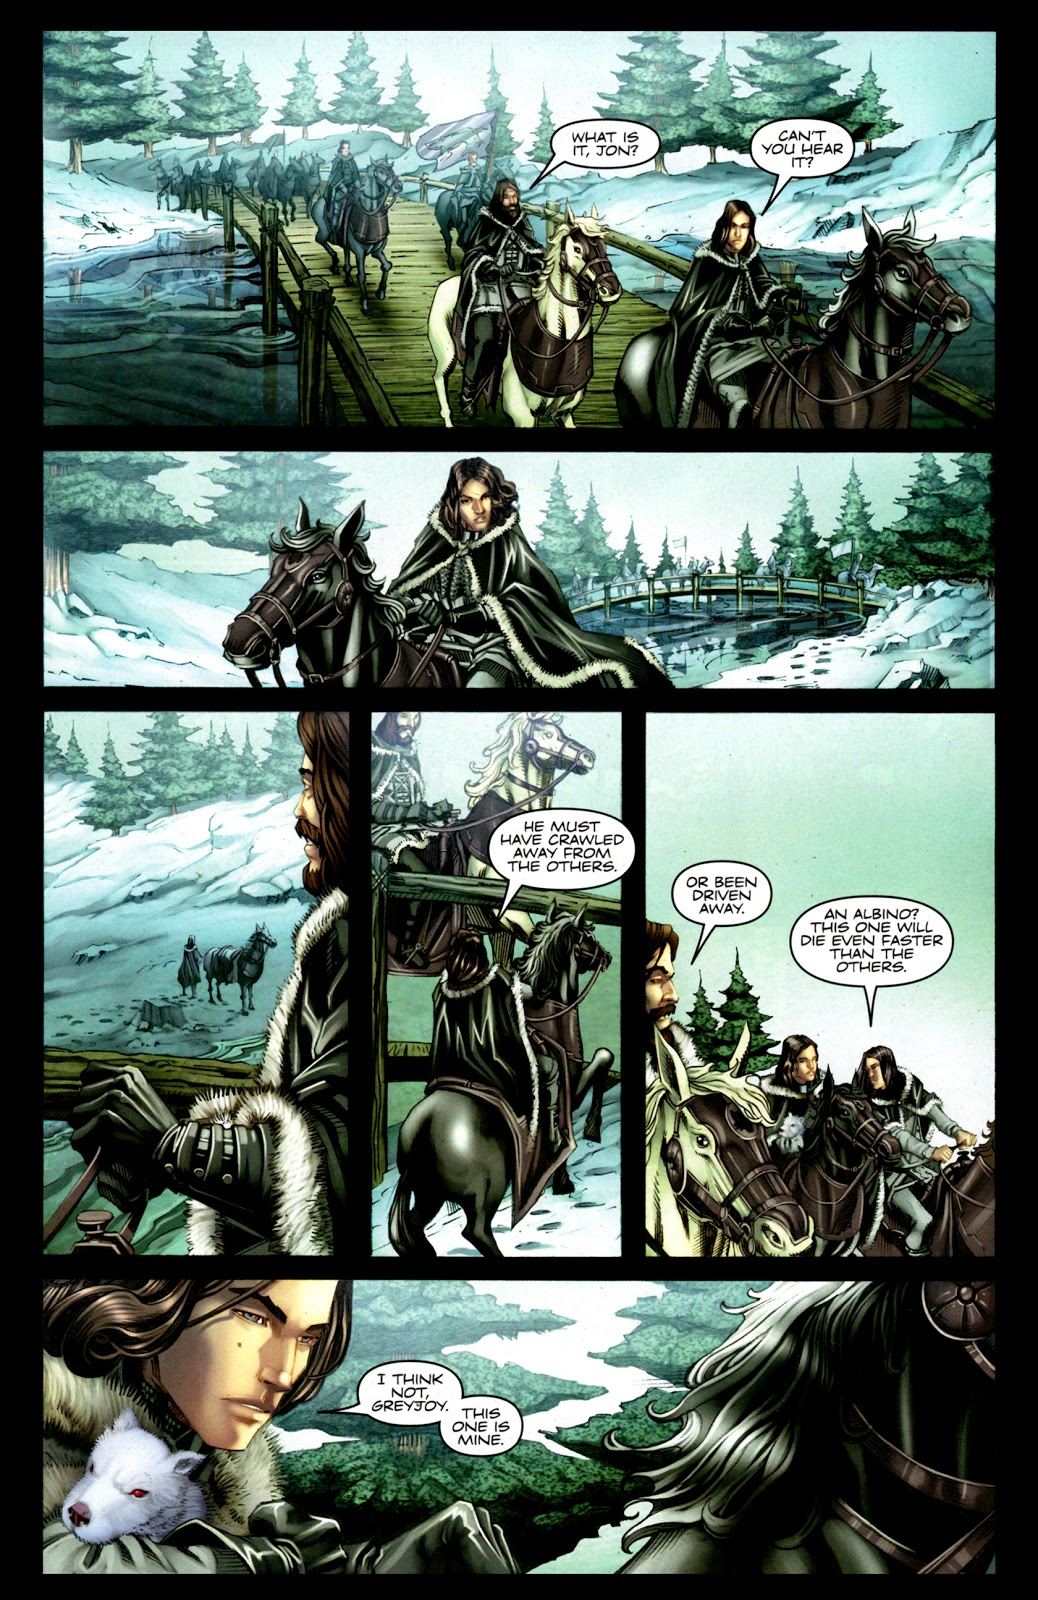 A Game of Thrones Vol 1 review